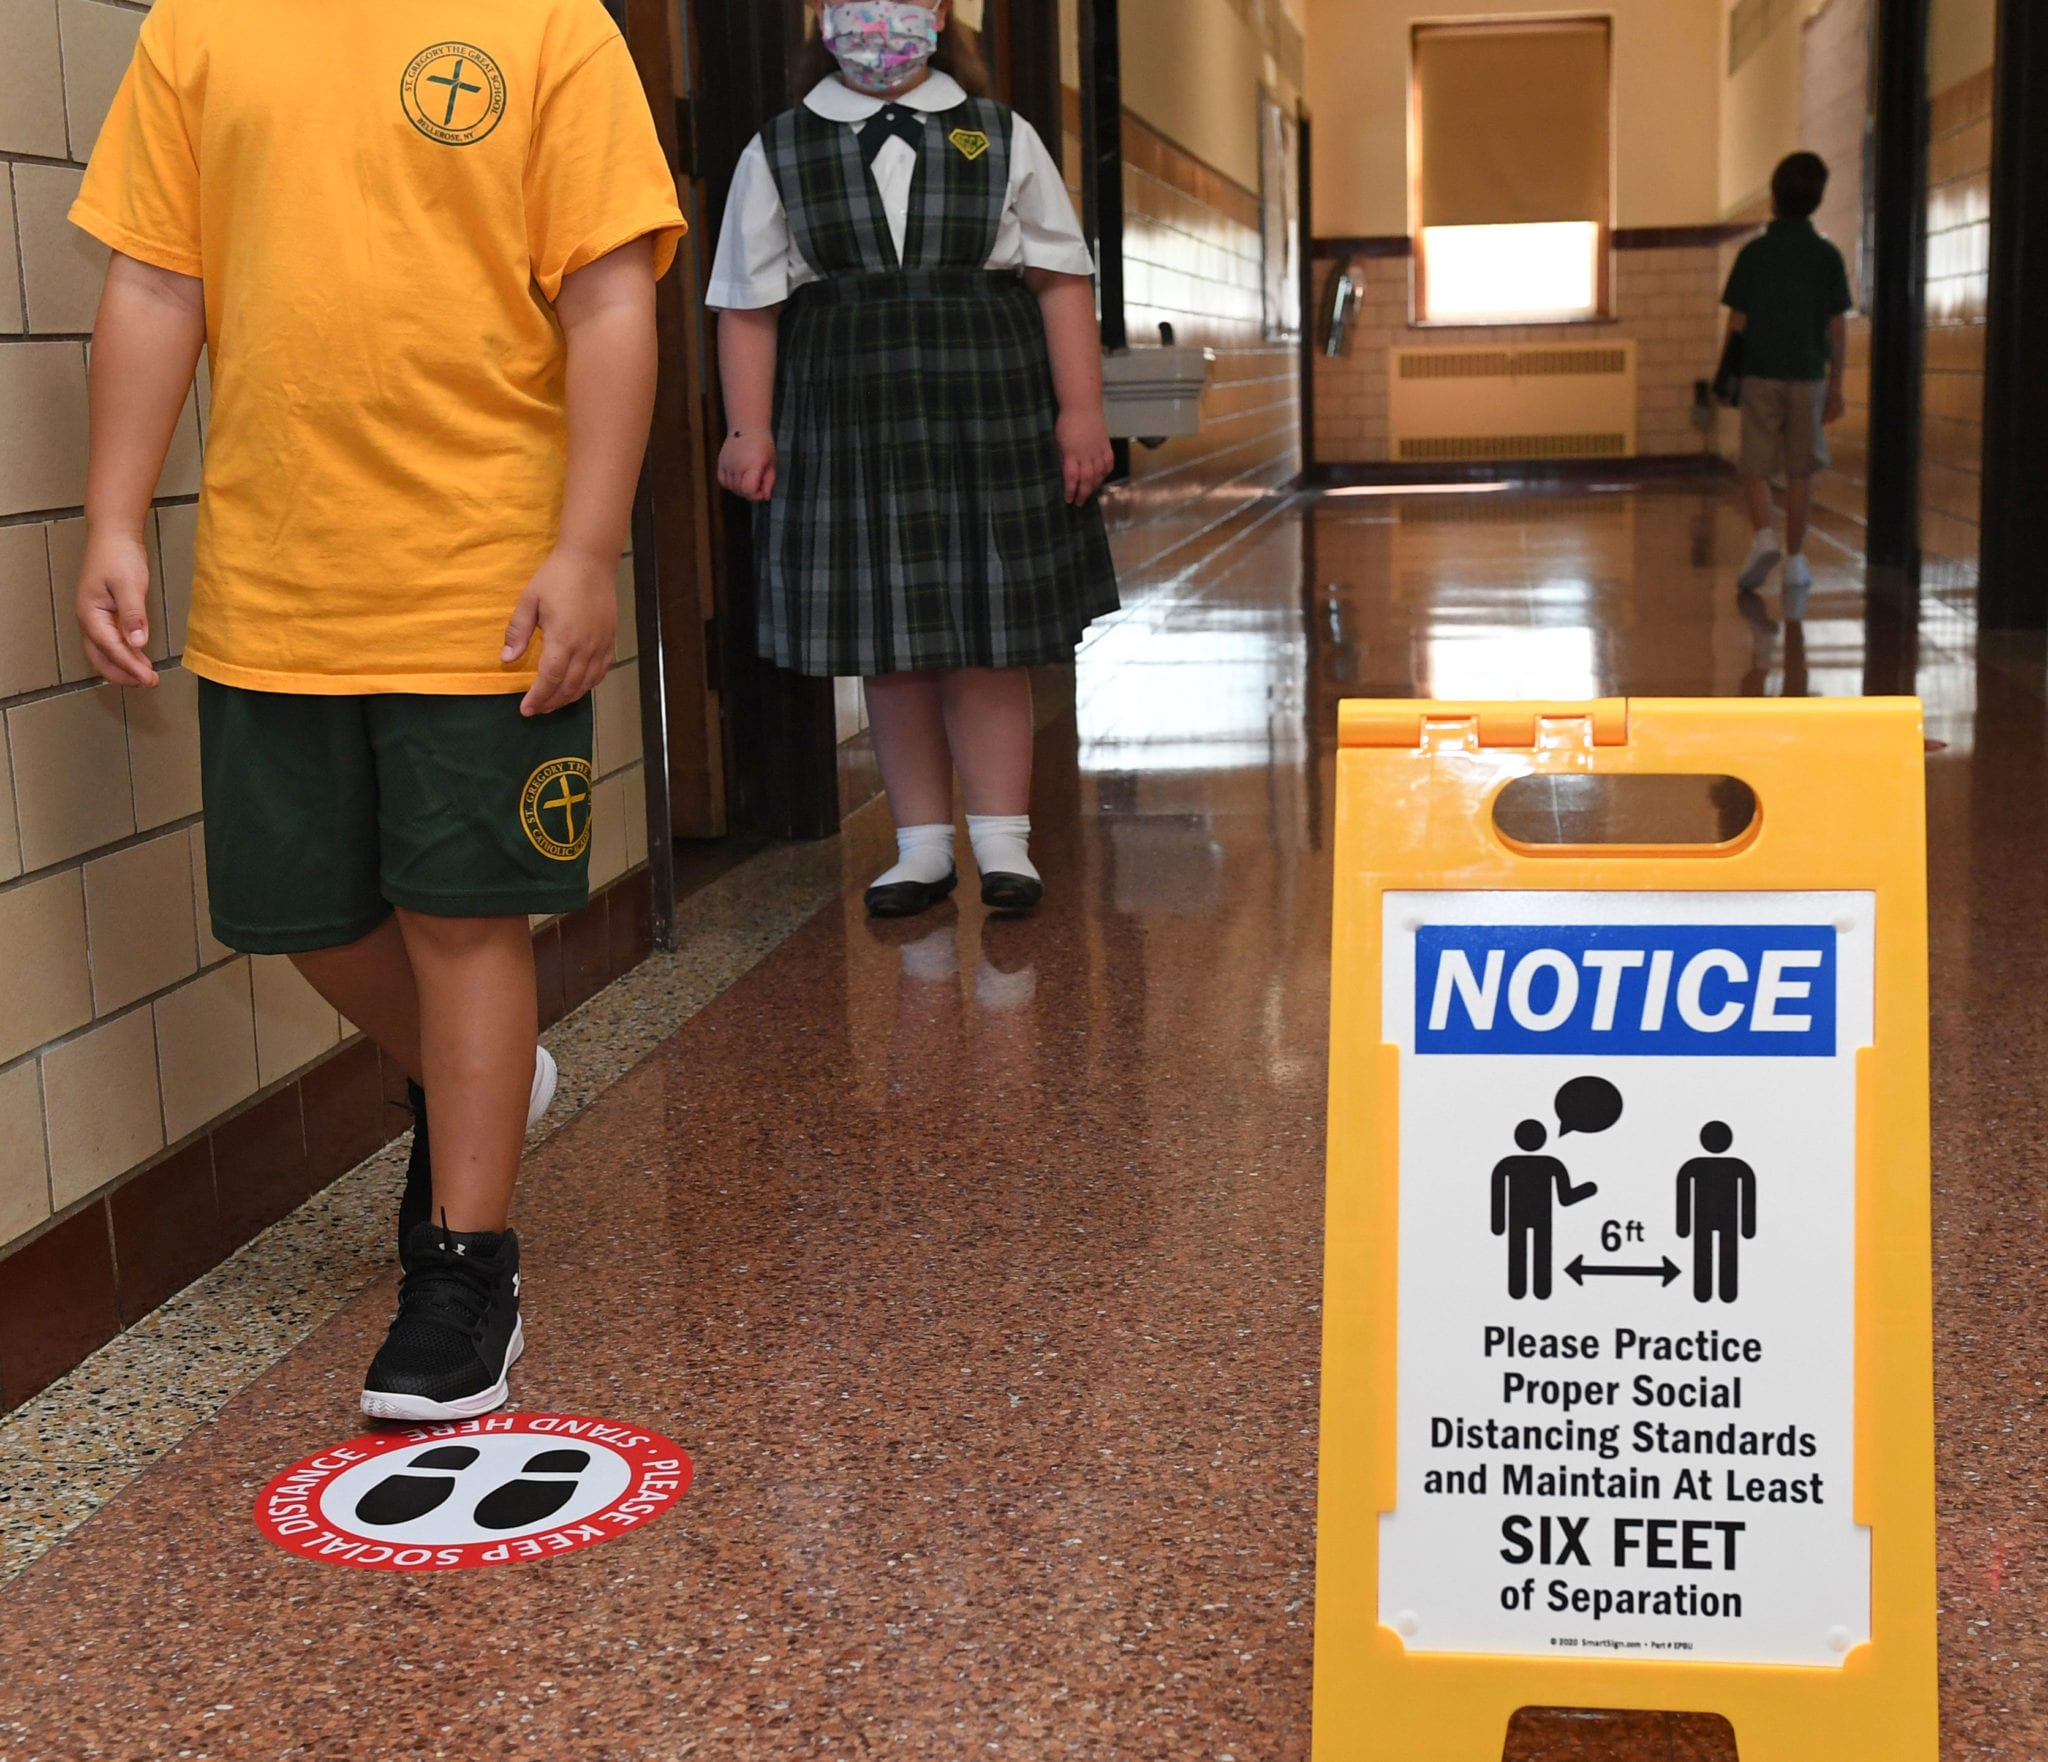 Children Walking In Hallway Wearing Masks and Social Distancing